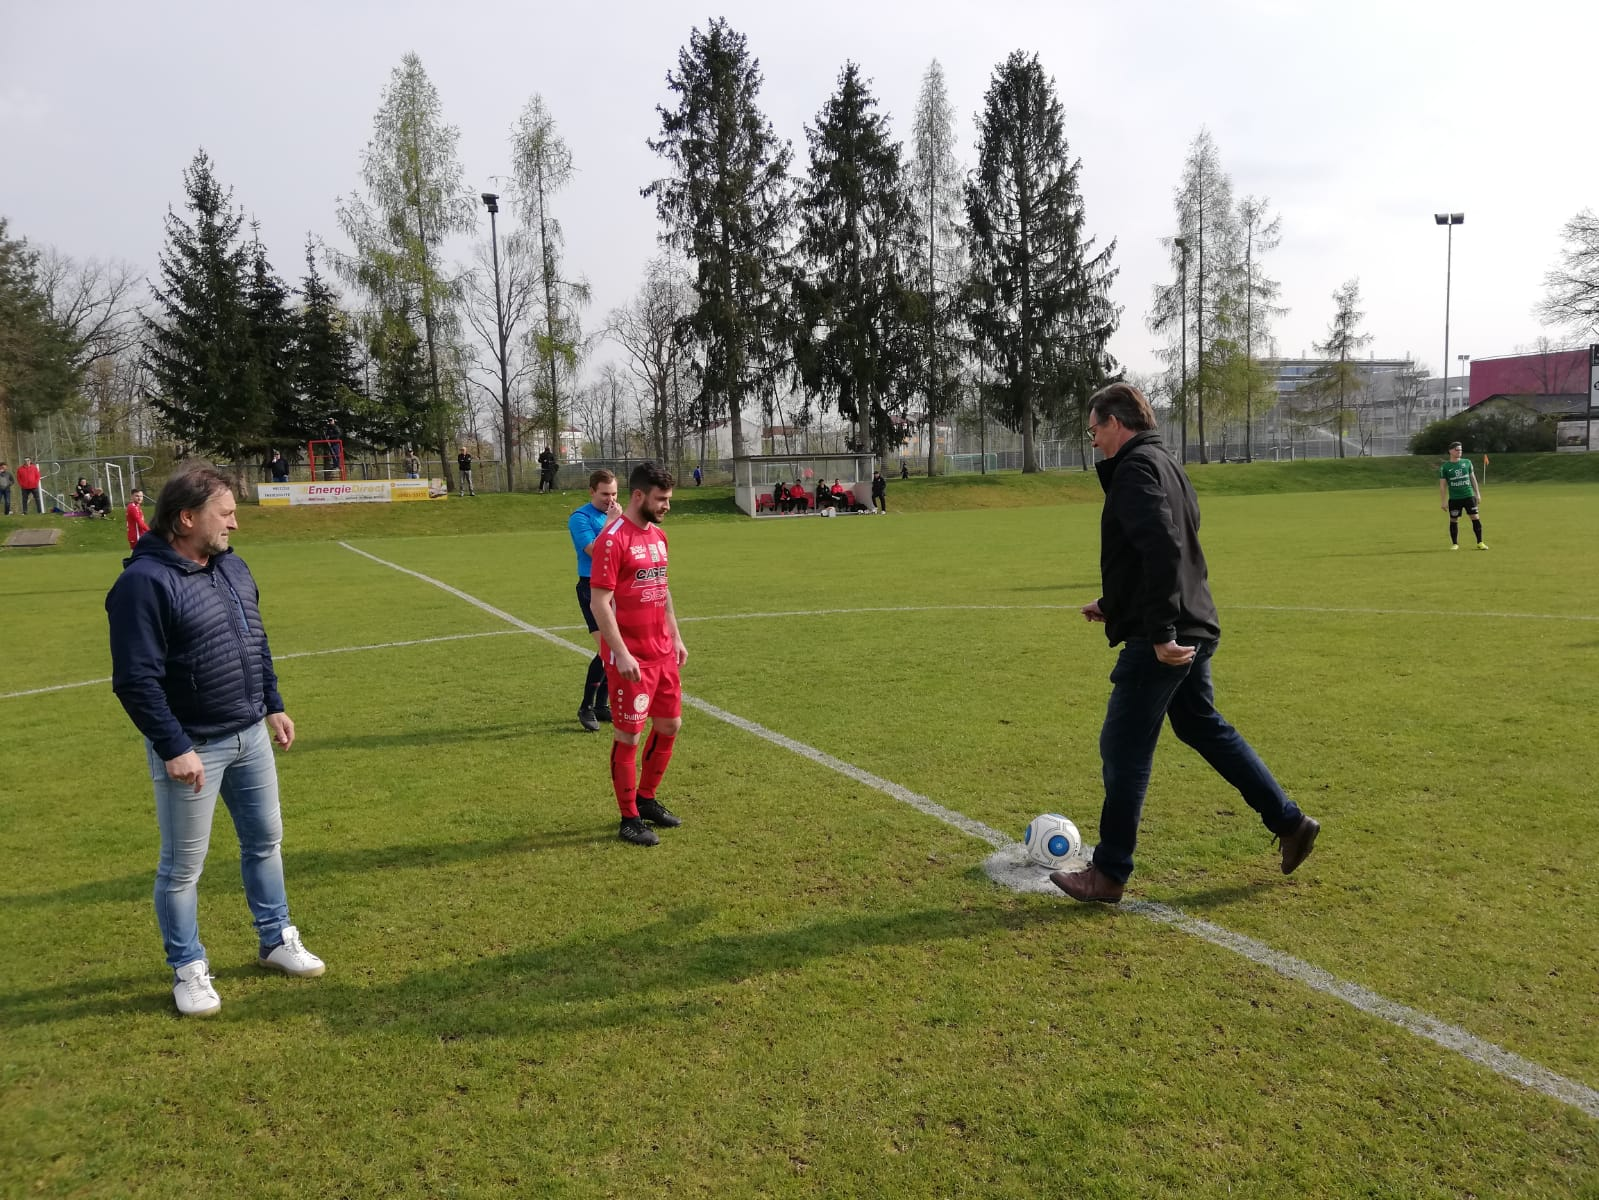 Ehrenanstoss Pillgrab Hans ASK vs Grieskirchen 13 04 2019 (4)